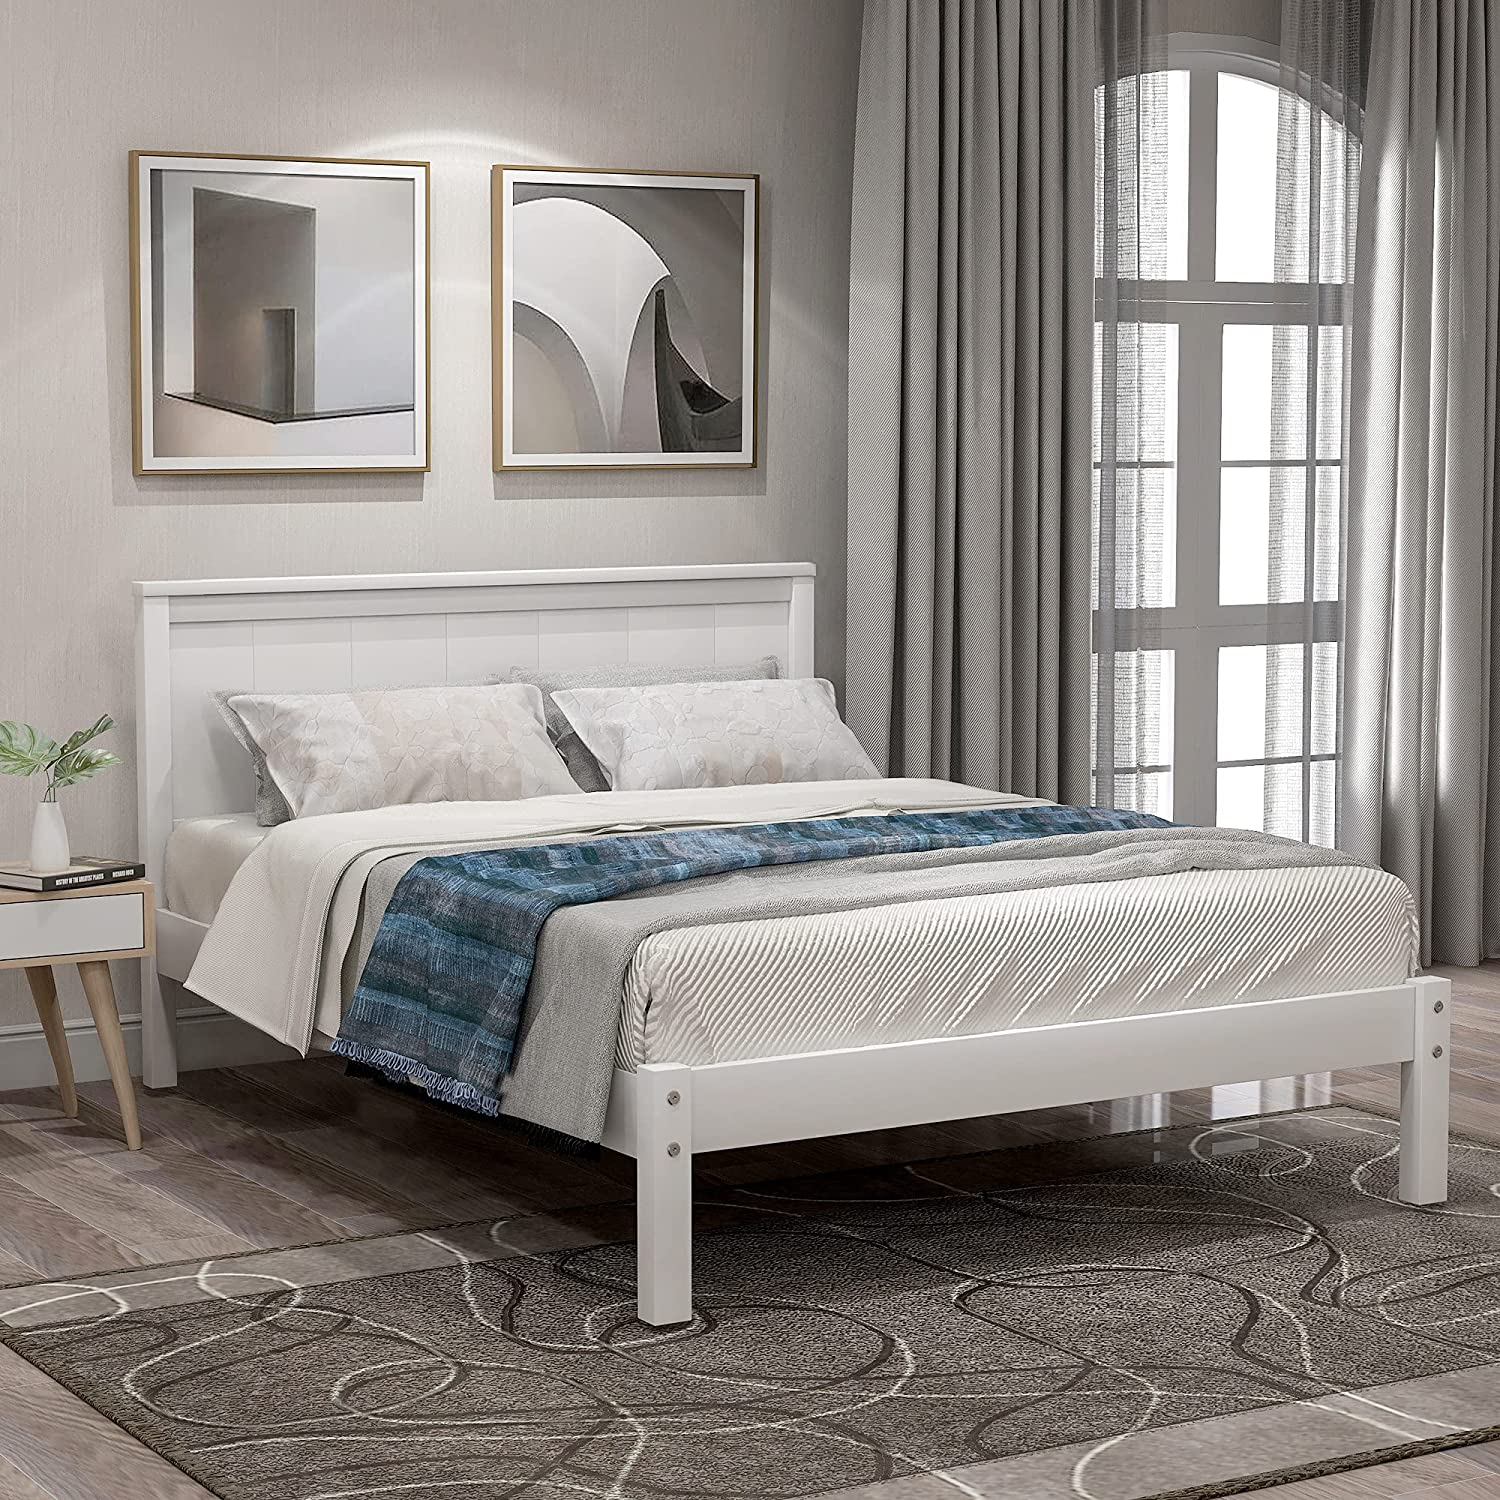 Twin Max 48% OFF Size Solid Chicago Mall Wood Platform with Headboard No Frame Bed